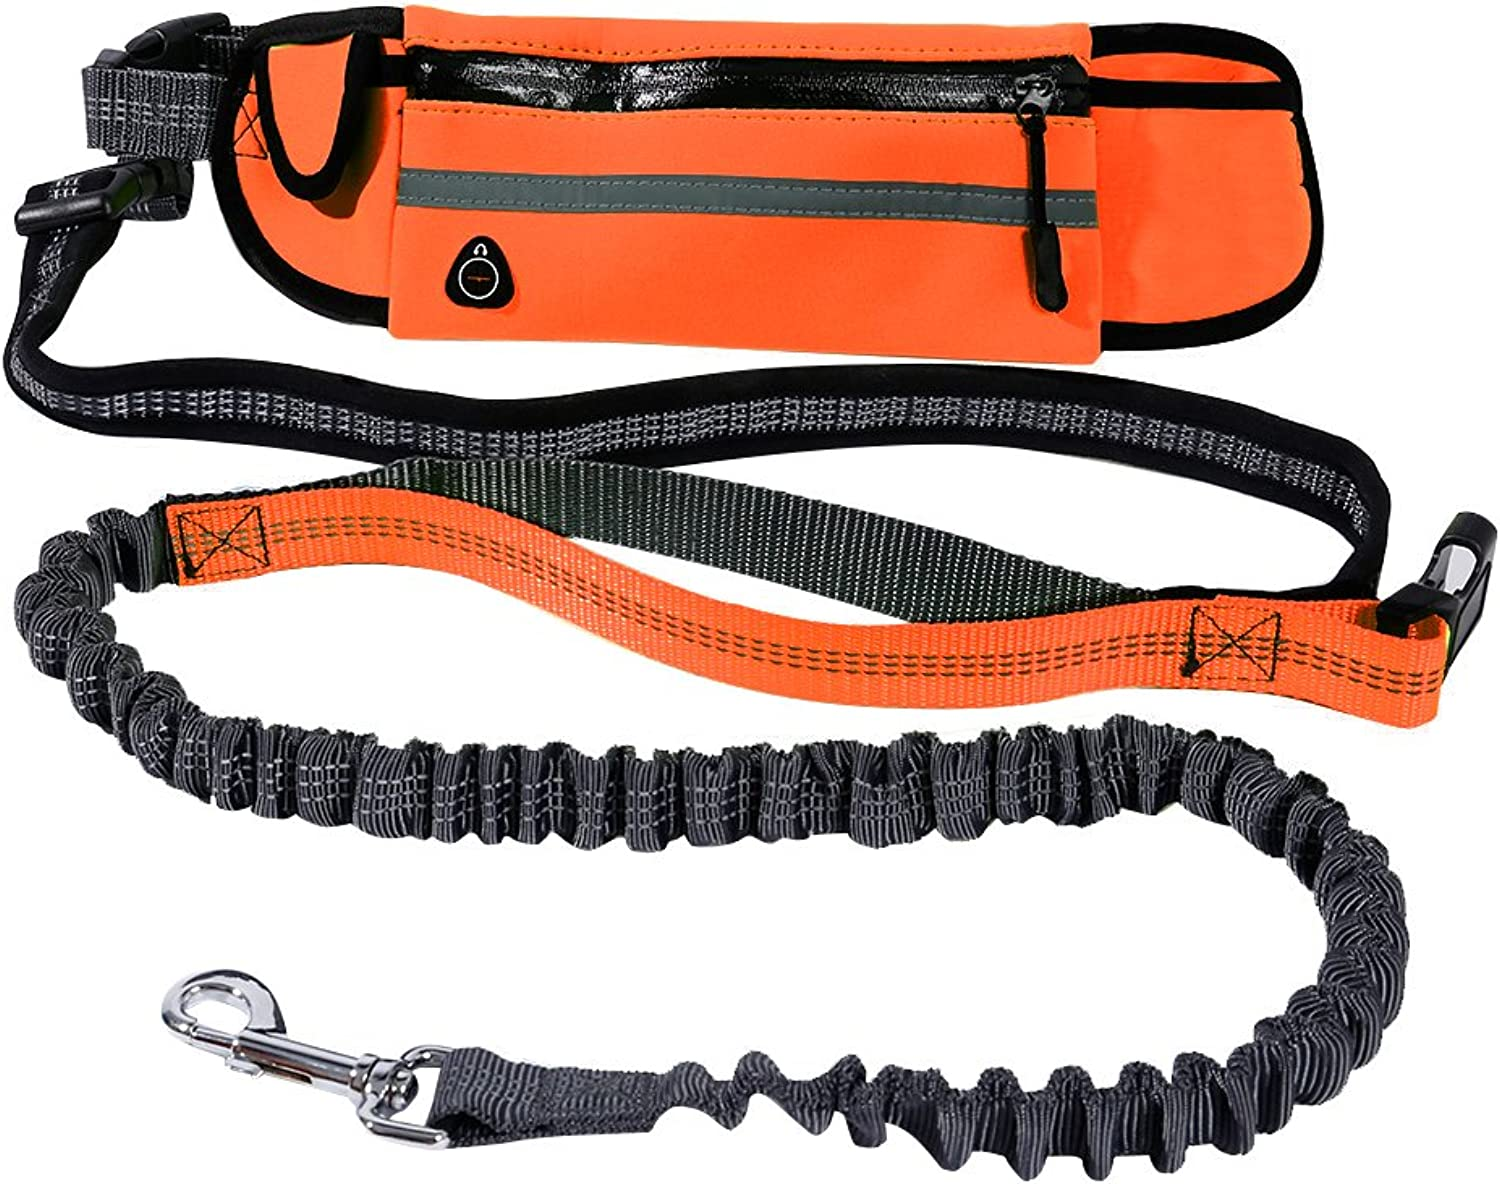 Hands Free Dog Leash by Lennystone  Adjustable Leash and Belt for Running and Walking with Retractable Reflective Bungee cord and Pockets